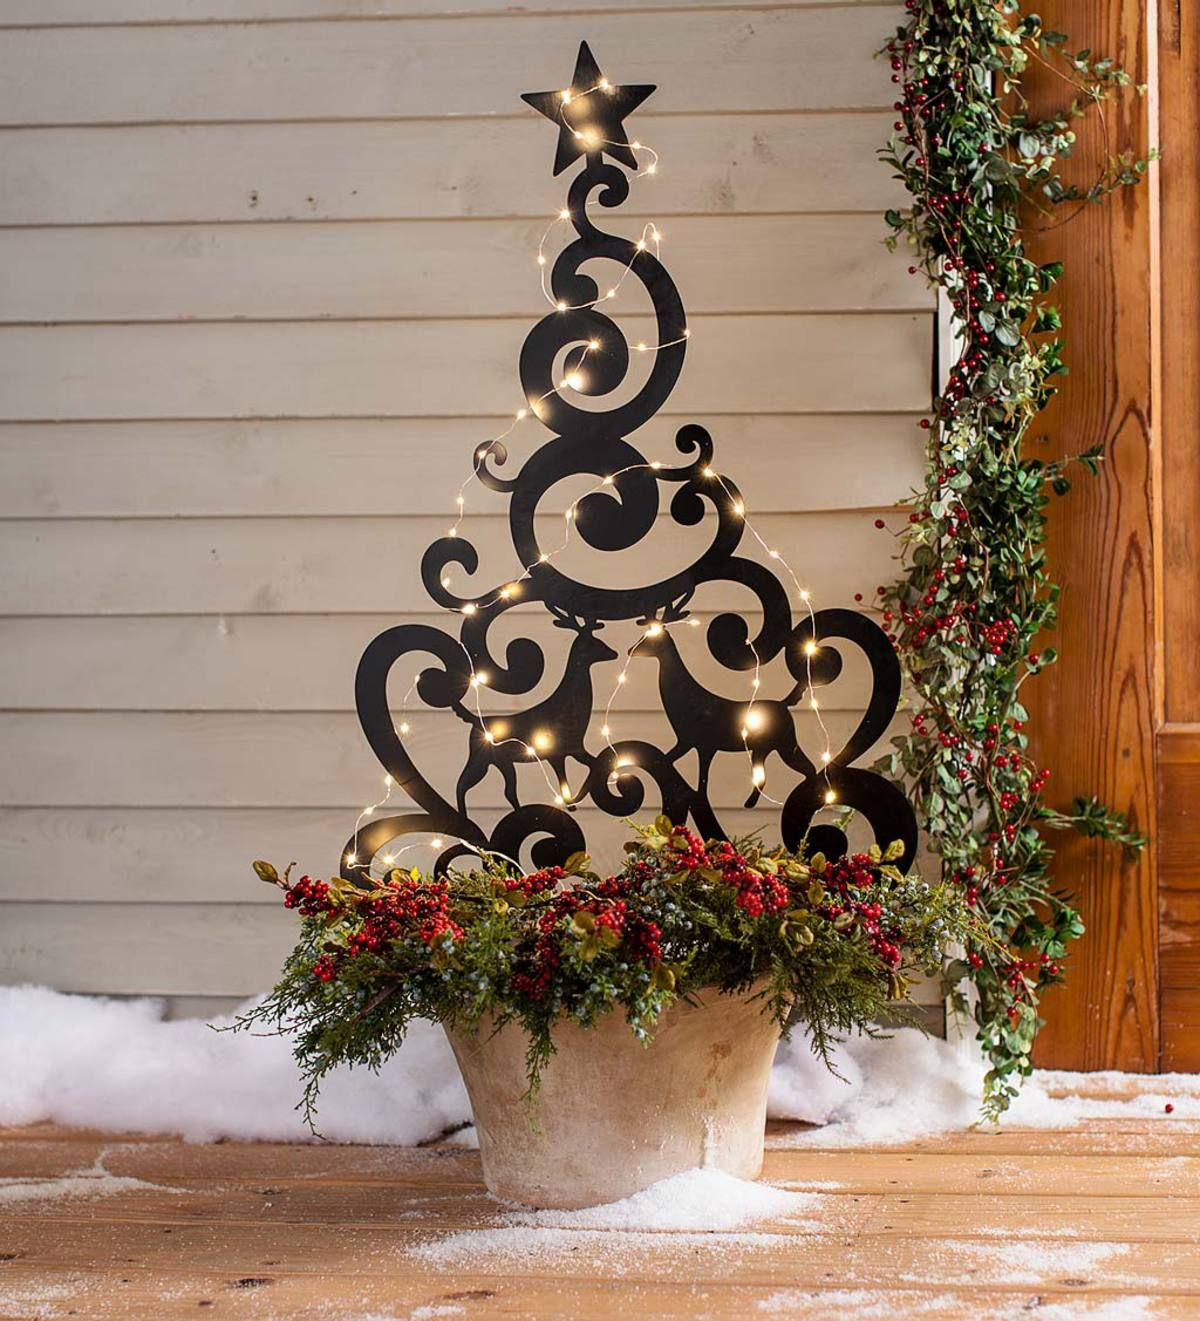 Metal Holiday Tree Stake With Deer Outdoor Holiday Decor Outdoor Christmas Decorations Christmas Tree Decorations